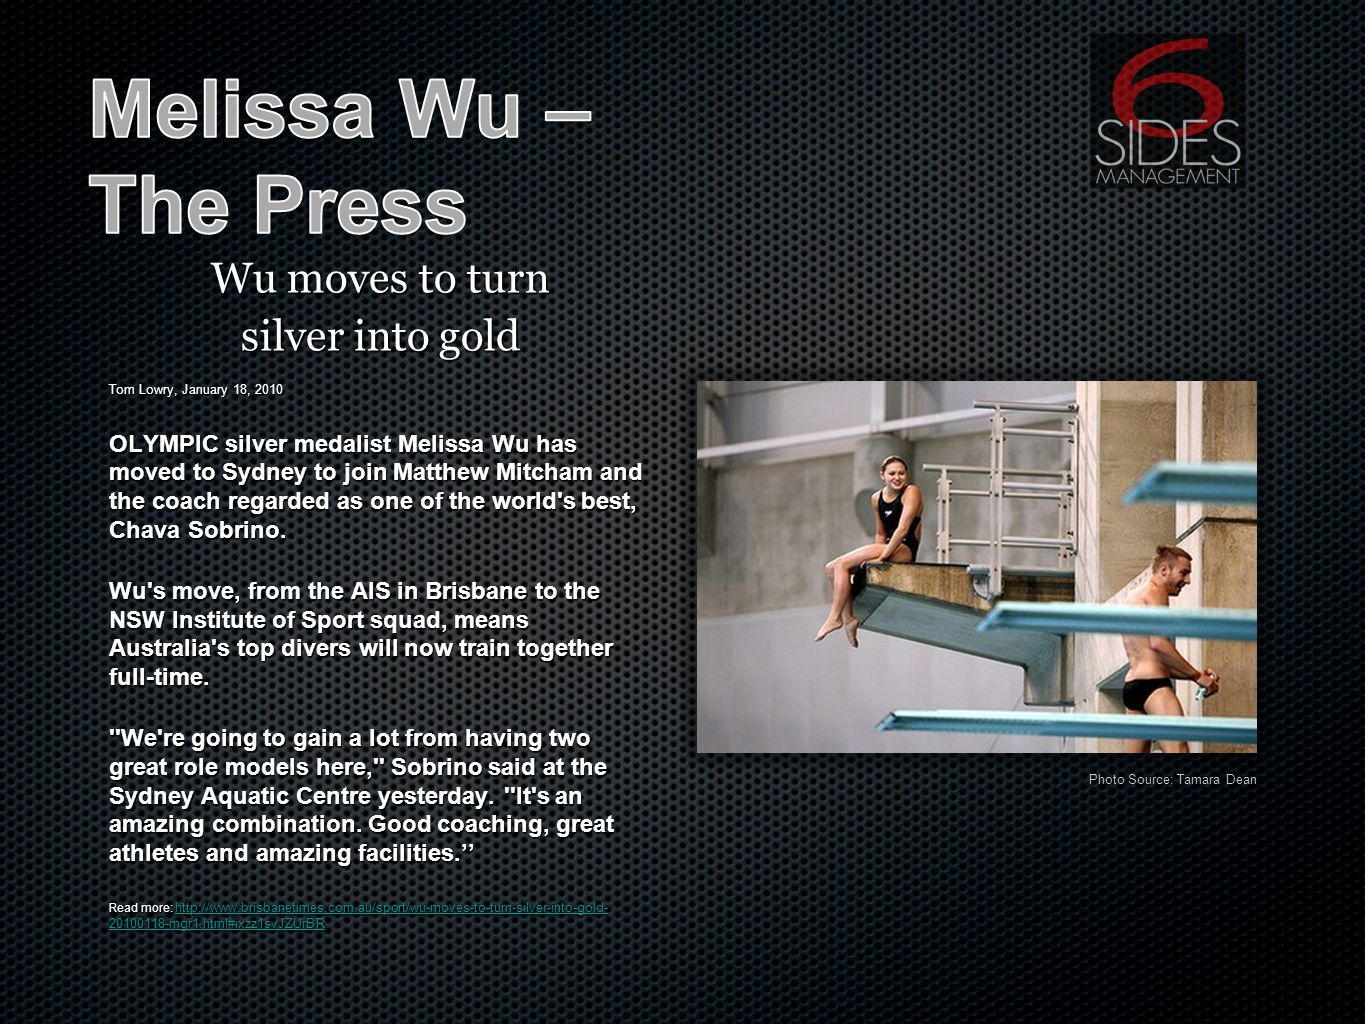 Wu moves to turn silver into gold Tom Lowry, January 18, 2010 OLYMPIC silver medalist Melissa Wu has moved to Sydney to join Matthew Mitcham and the coach regarded as one of the world s best, Chava Sobrino.